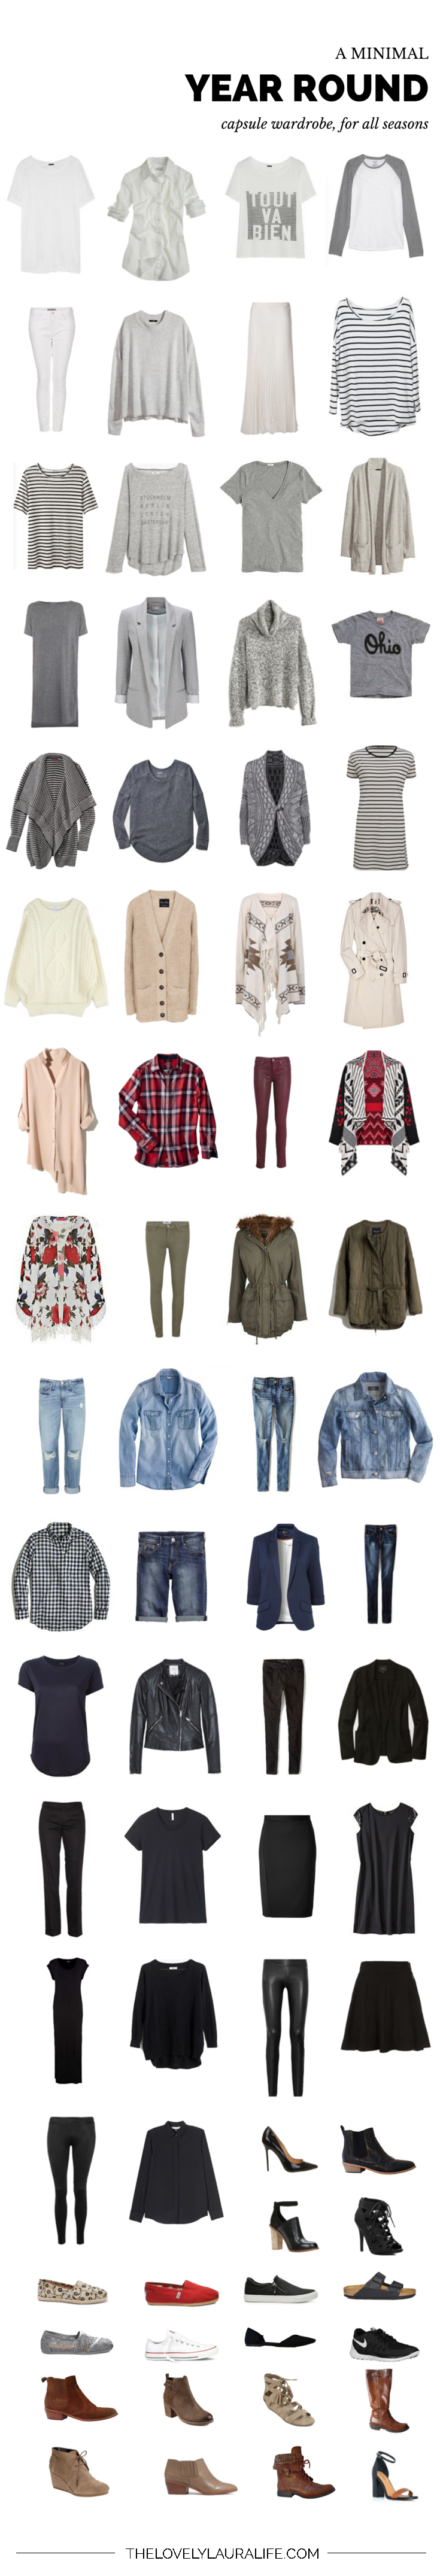 All Seasons Capsule Wardrobe Spring 2015 Update